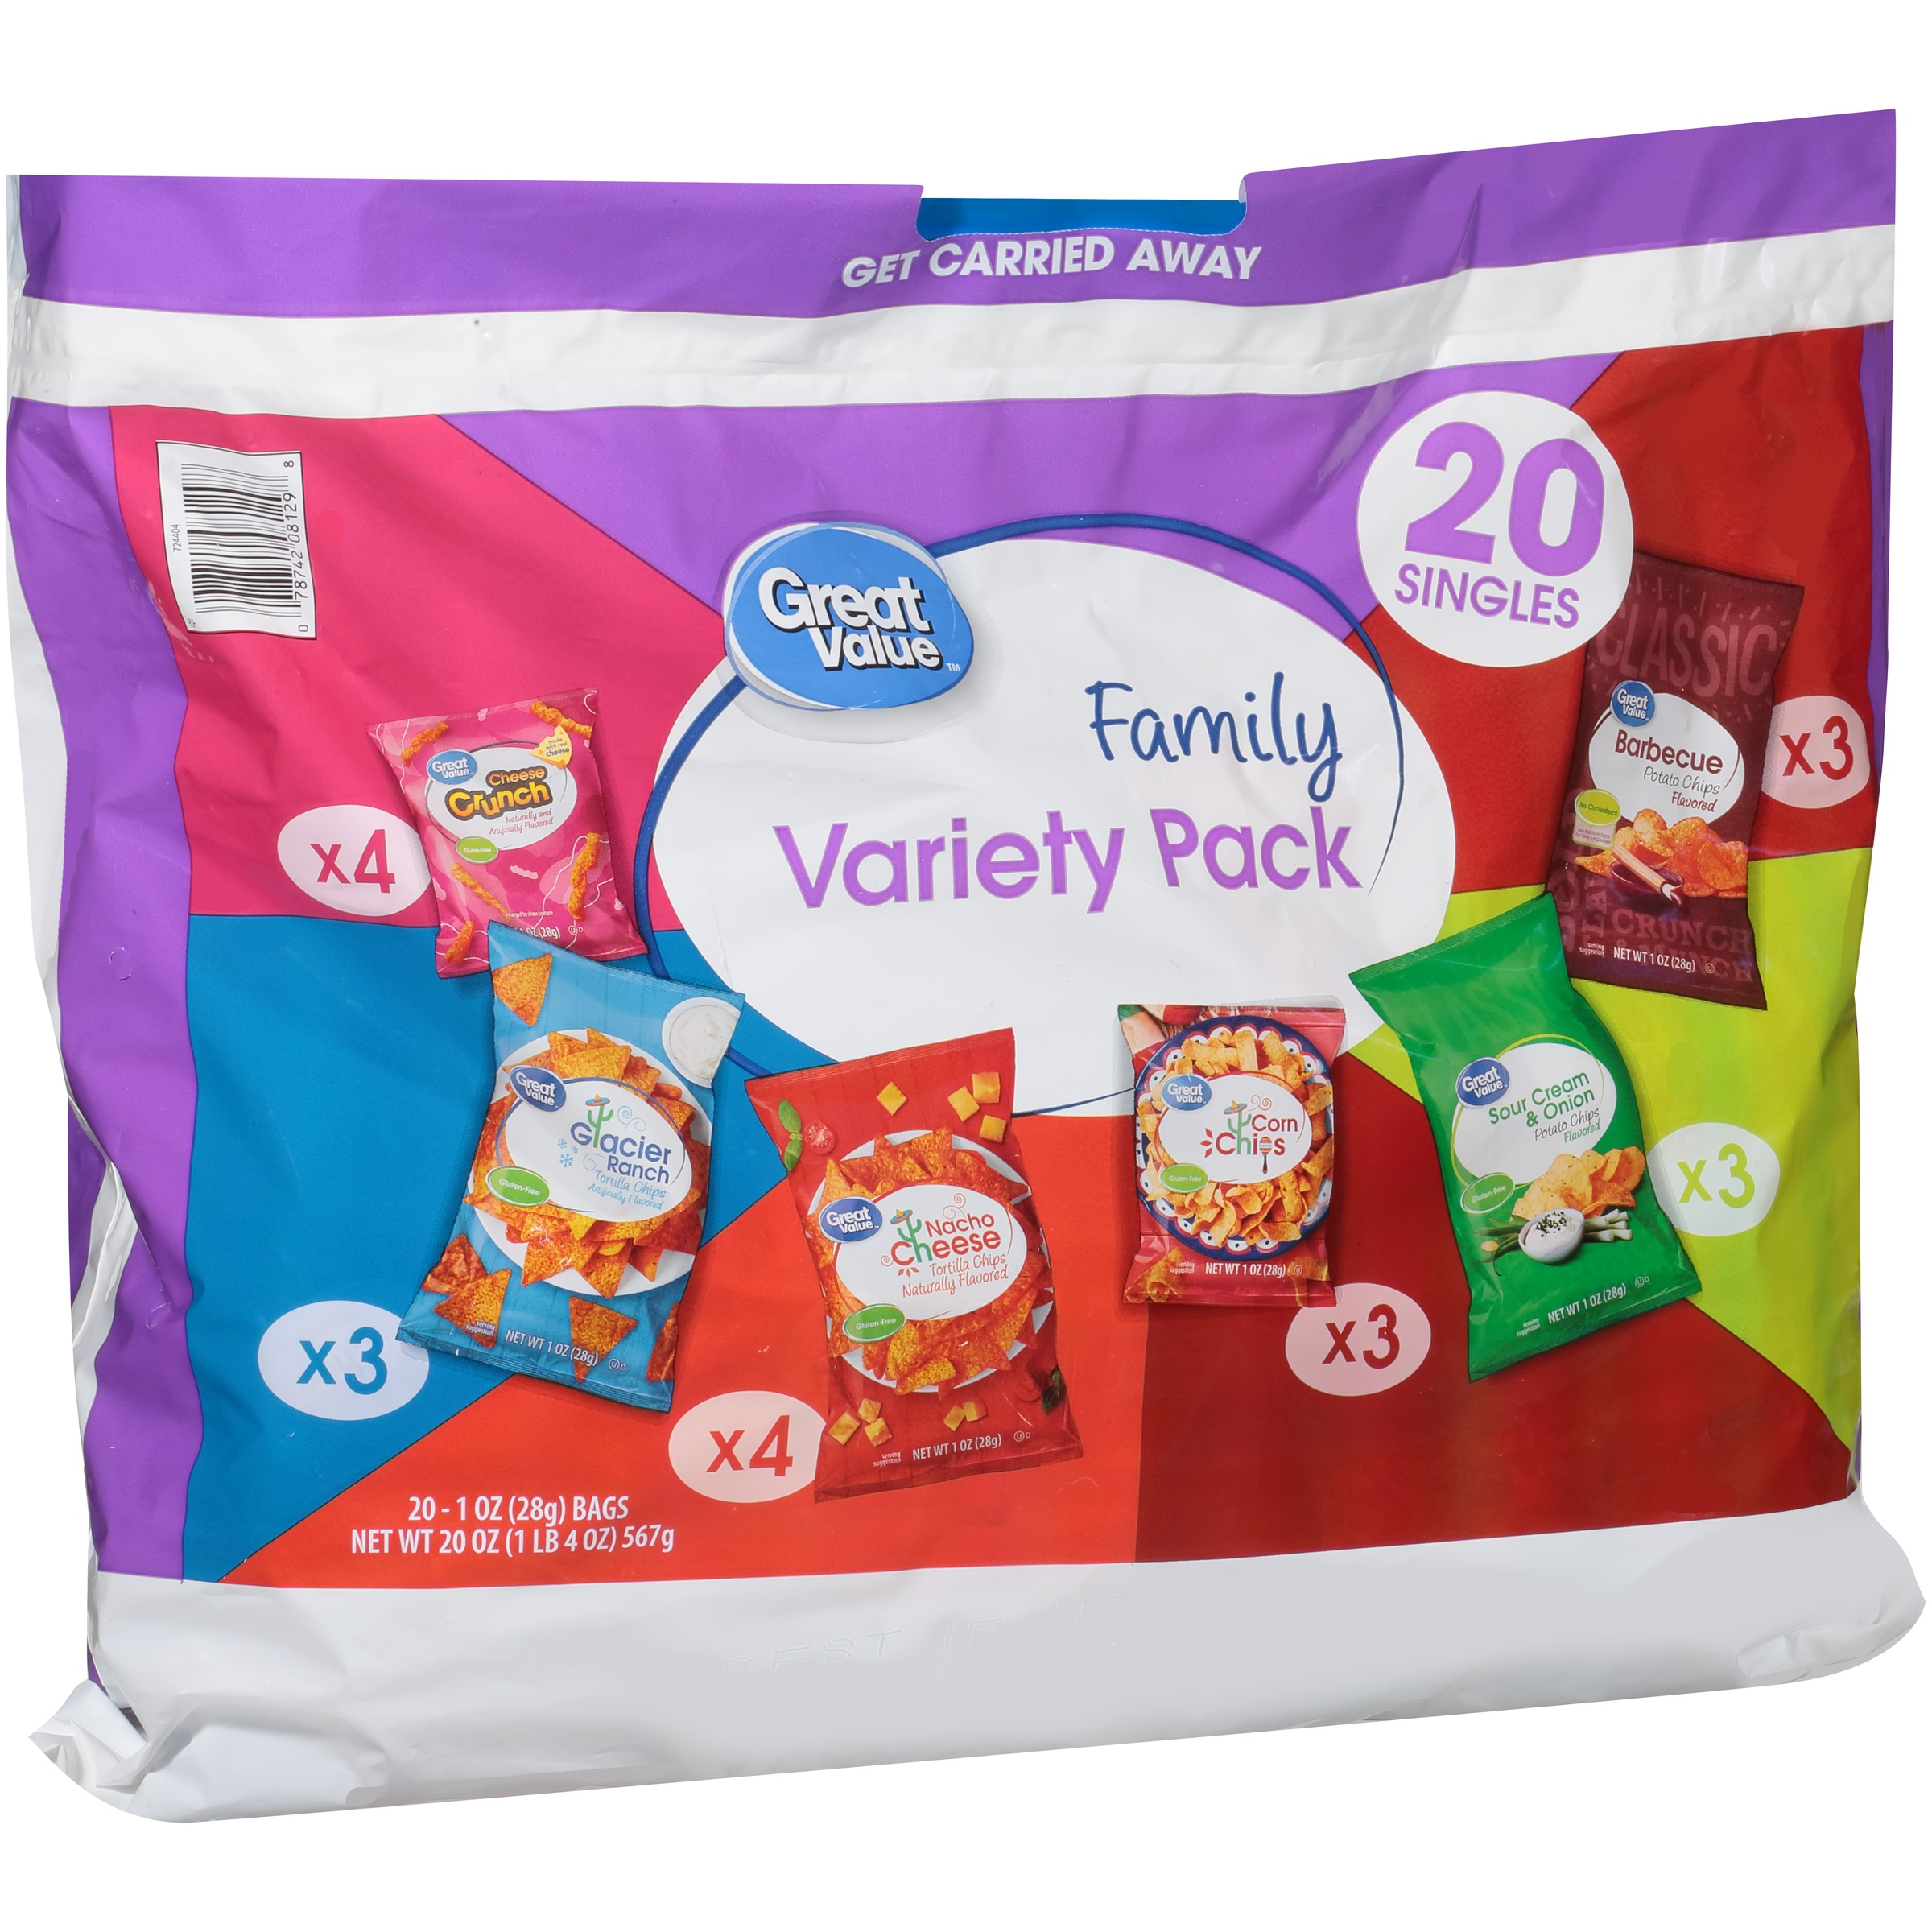 (2 Pack) Great Value Family Variety Pack Snacks, Tortilla, Corn, Potato Chip Variety, 20 Count